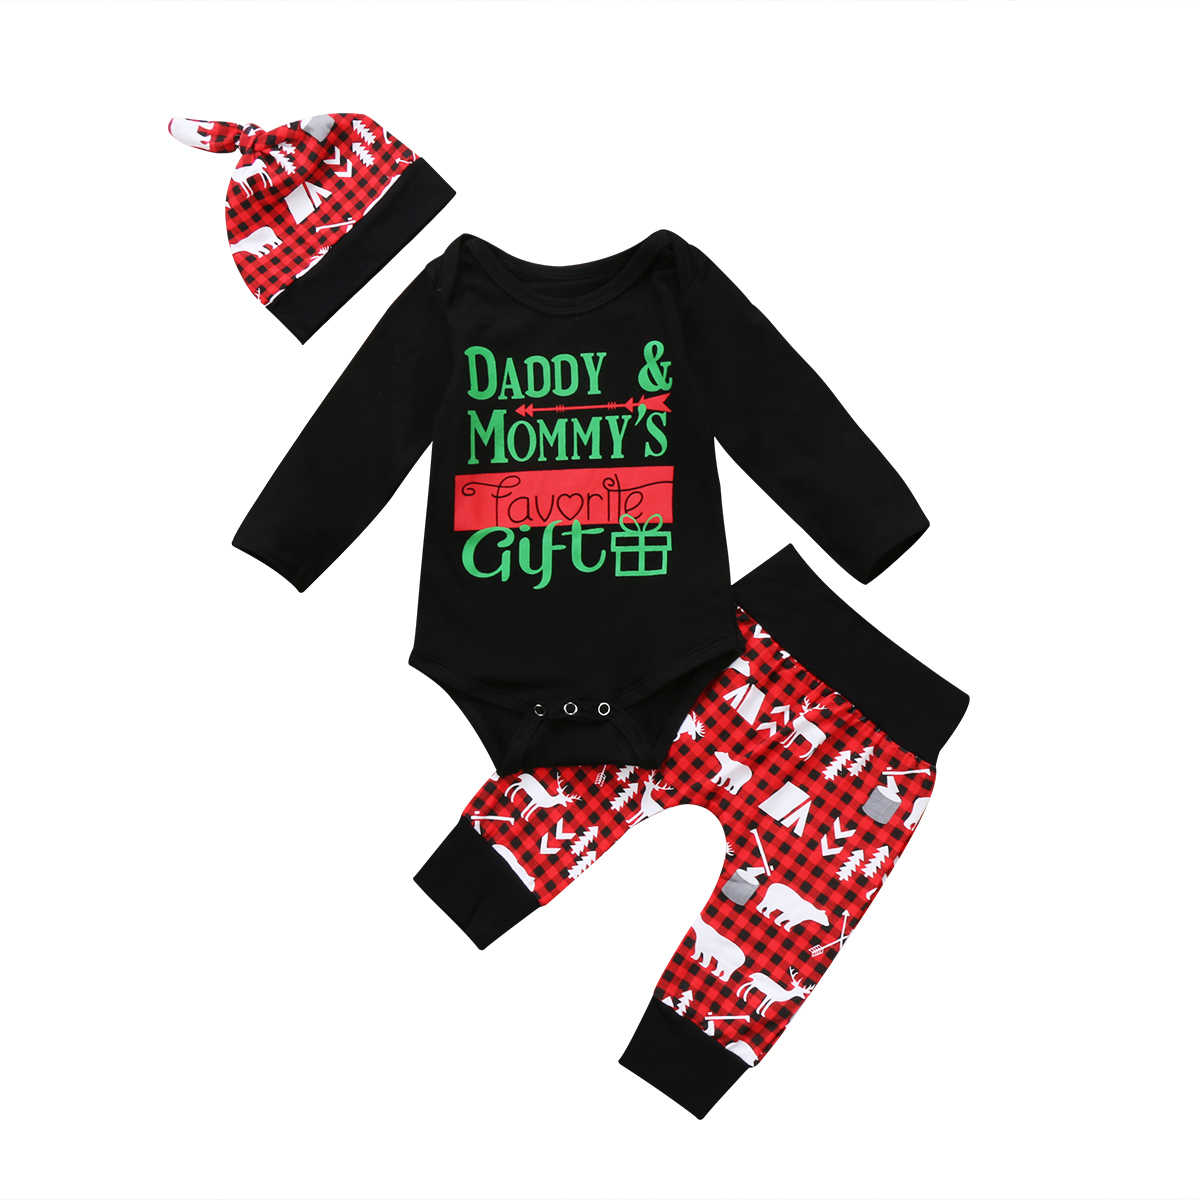 727d0a6826e1 Detail Feedback Questions about 3Pcs christmas baby clothes Xmas ...